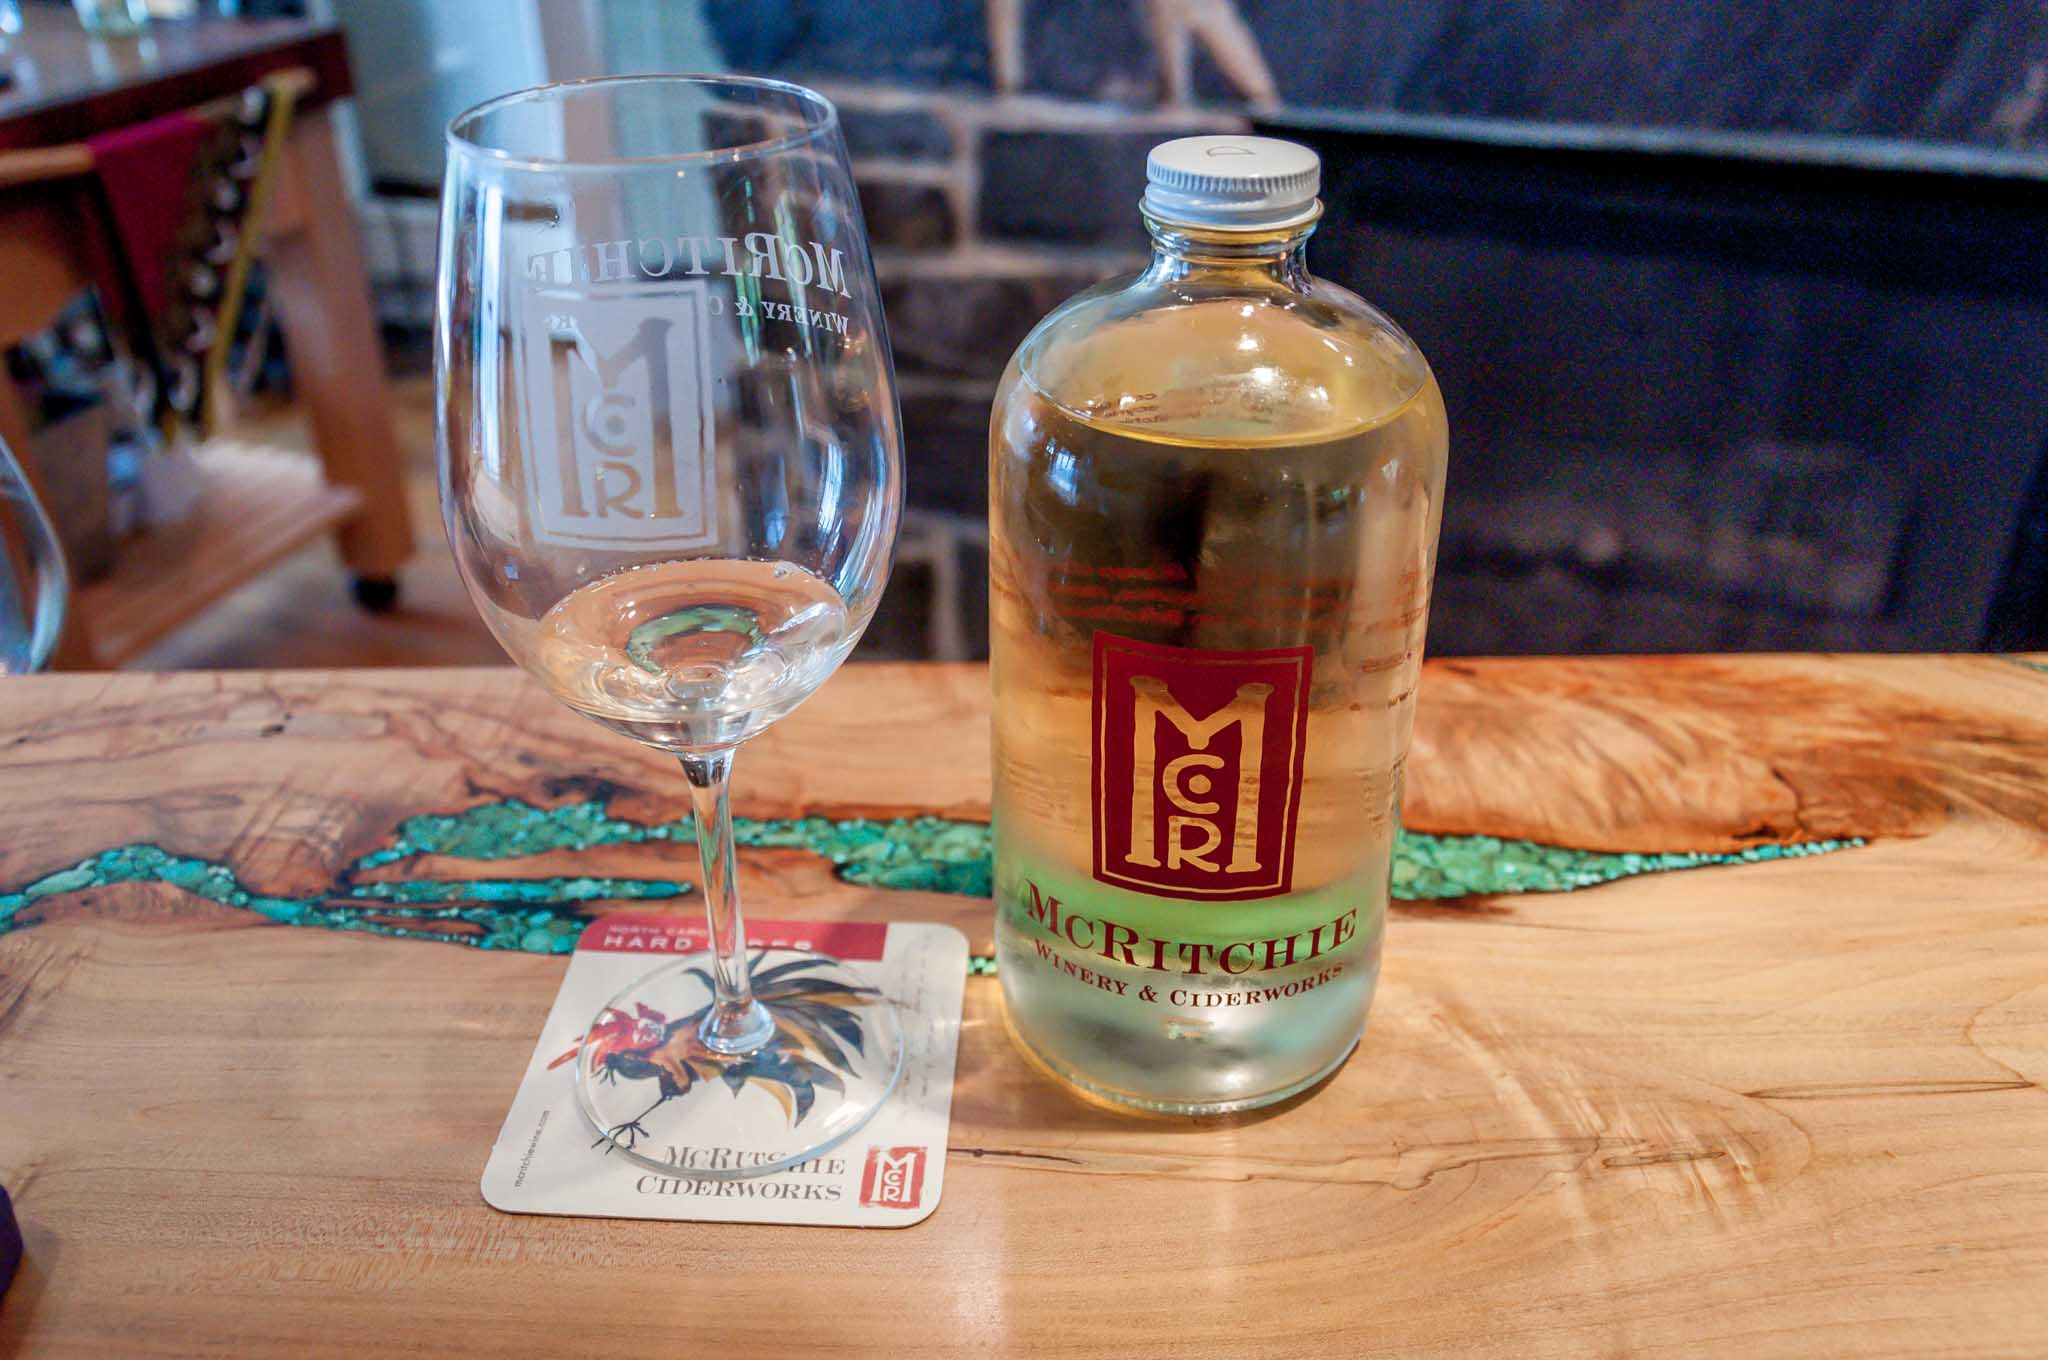 Bottle of cider and glass at McRitchie Vineyards and Ciderworks